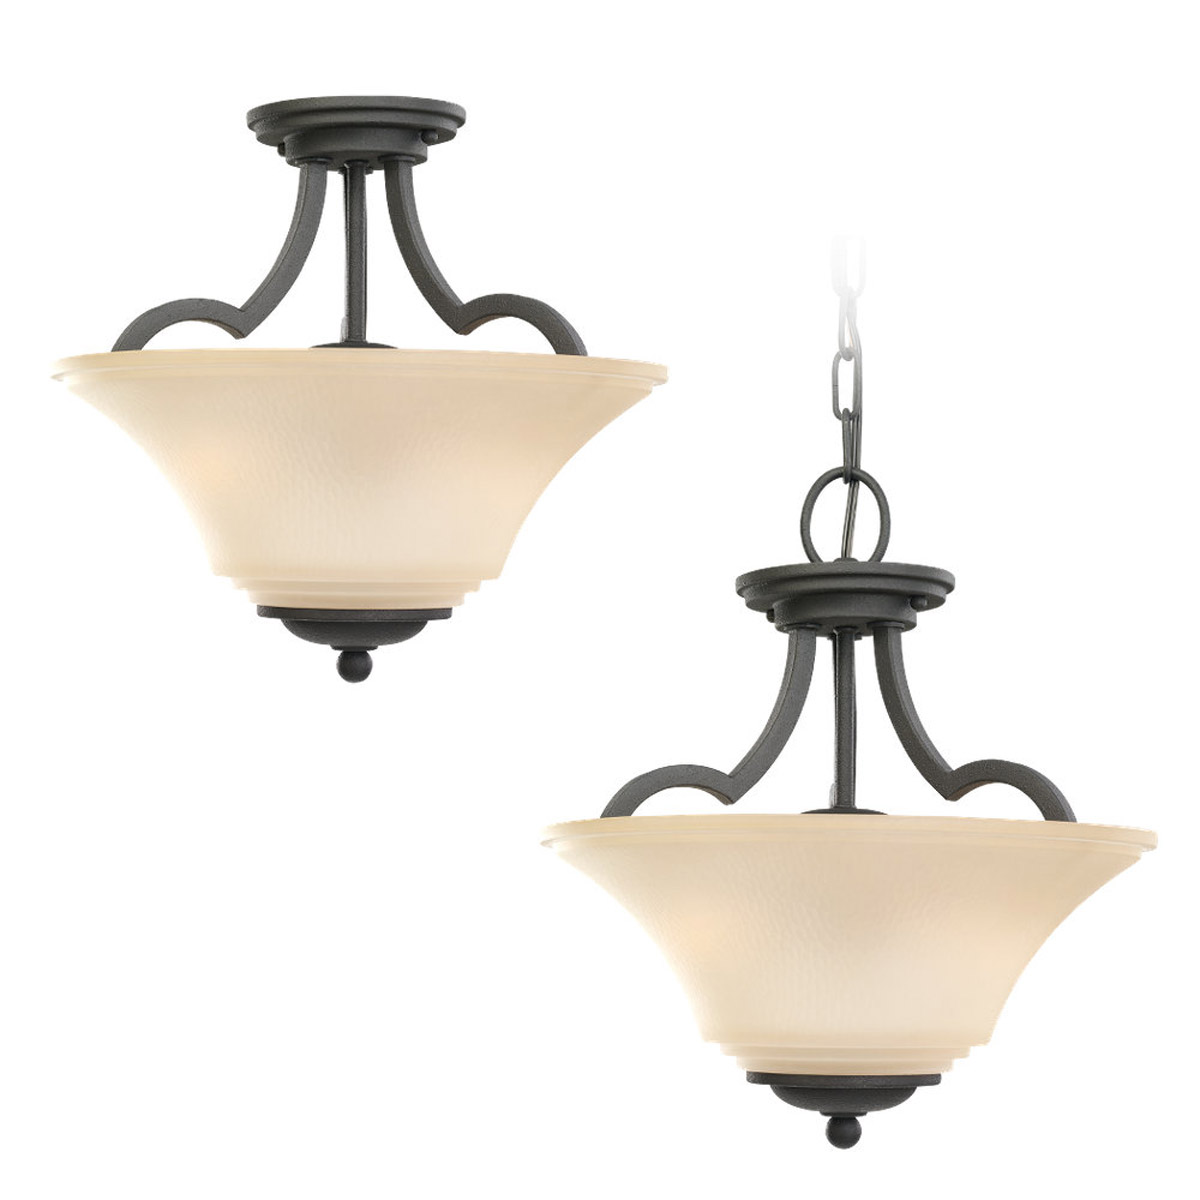 Sea Gull Lighting Somerton 2 Light Semi-Flush Mount in Blacksmith 77375-839